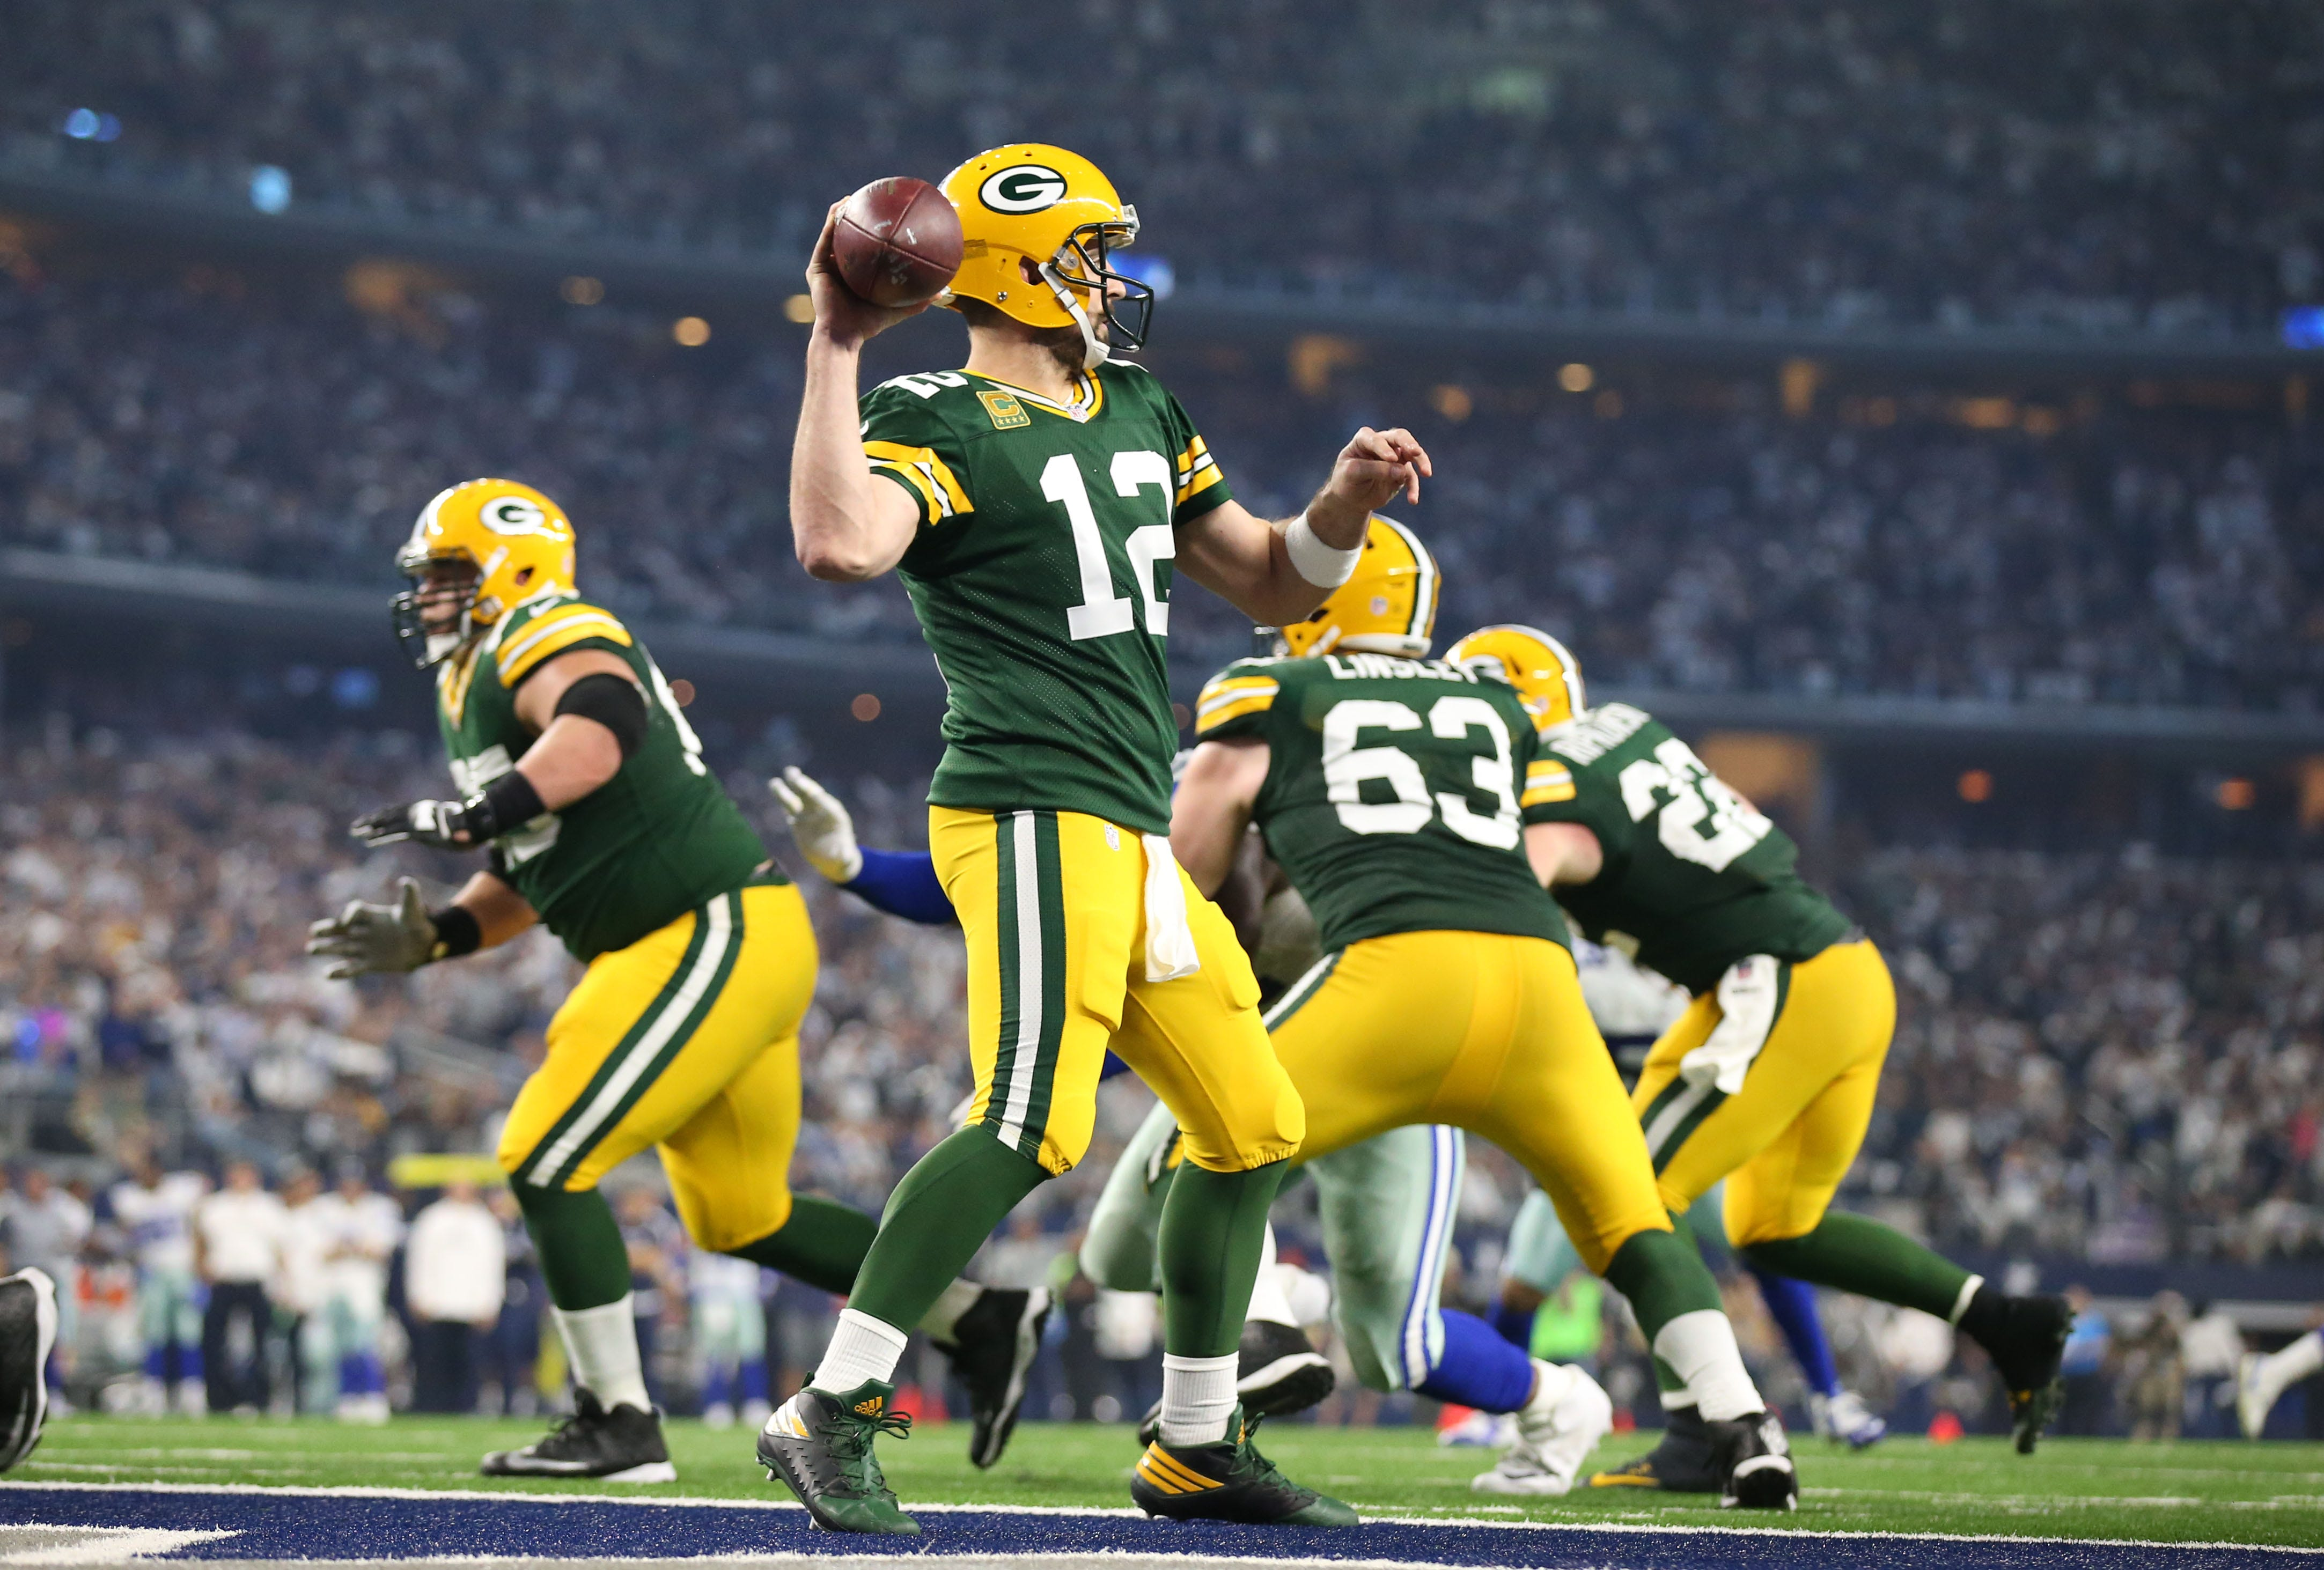 Packers nfl playoffs